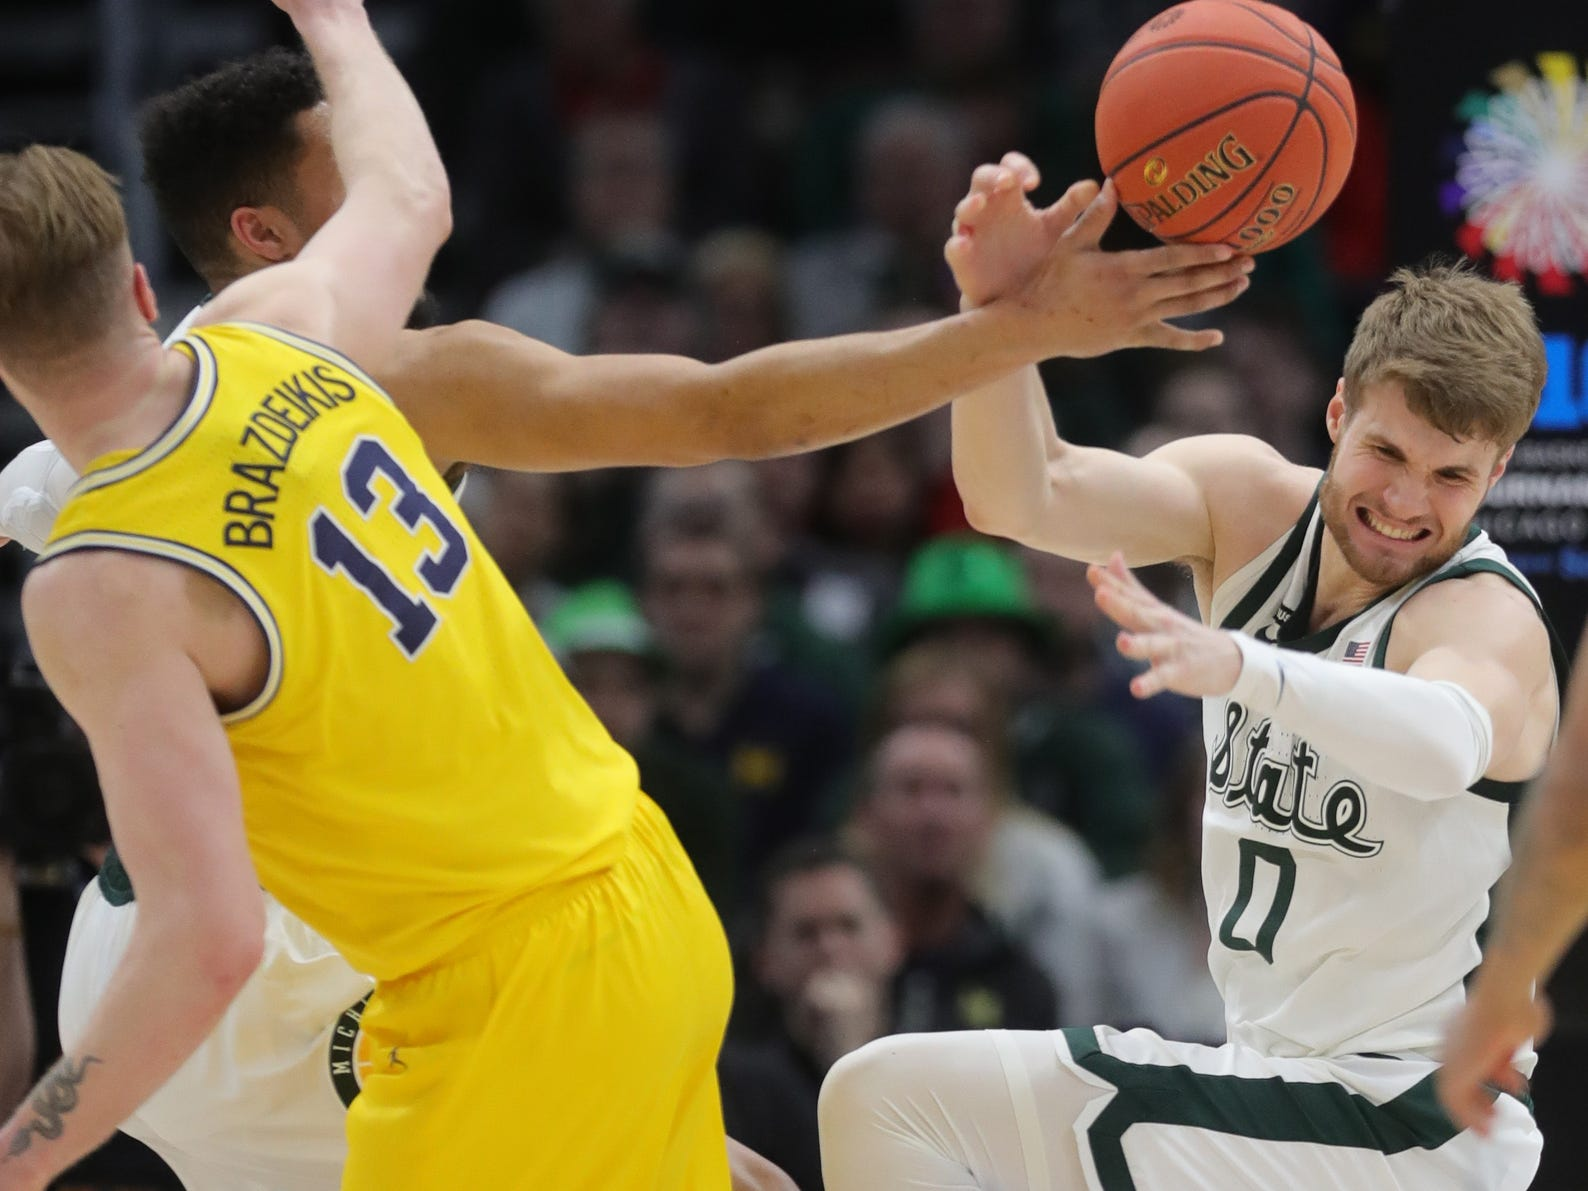 Michigan State's Kyle Ahrens rebounds against Michigan's Ignas Brazkeikis during the first half of the Big Ten tournament championship Sunday, March 17, 2019 at the United Center in Chicago.